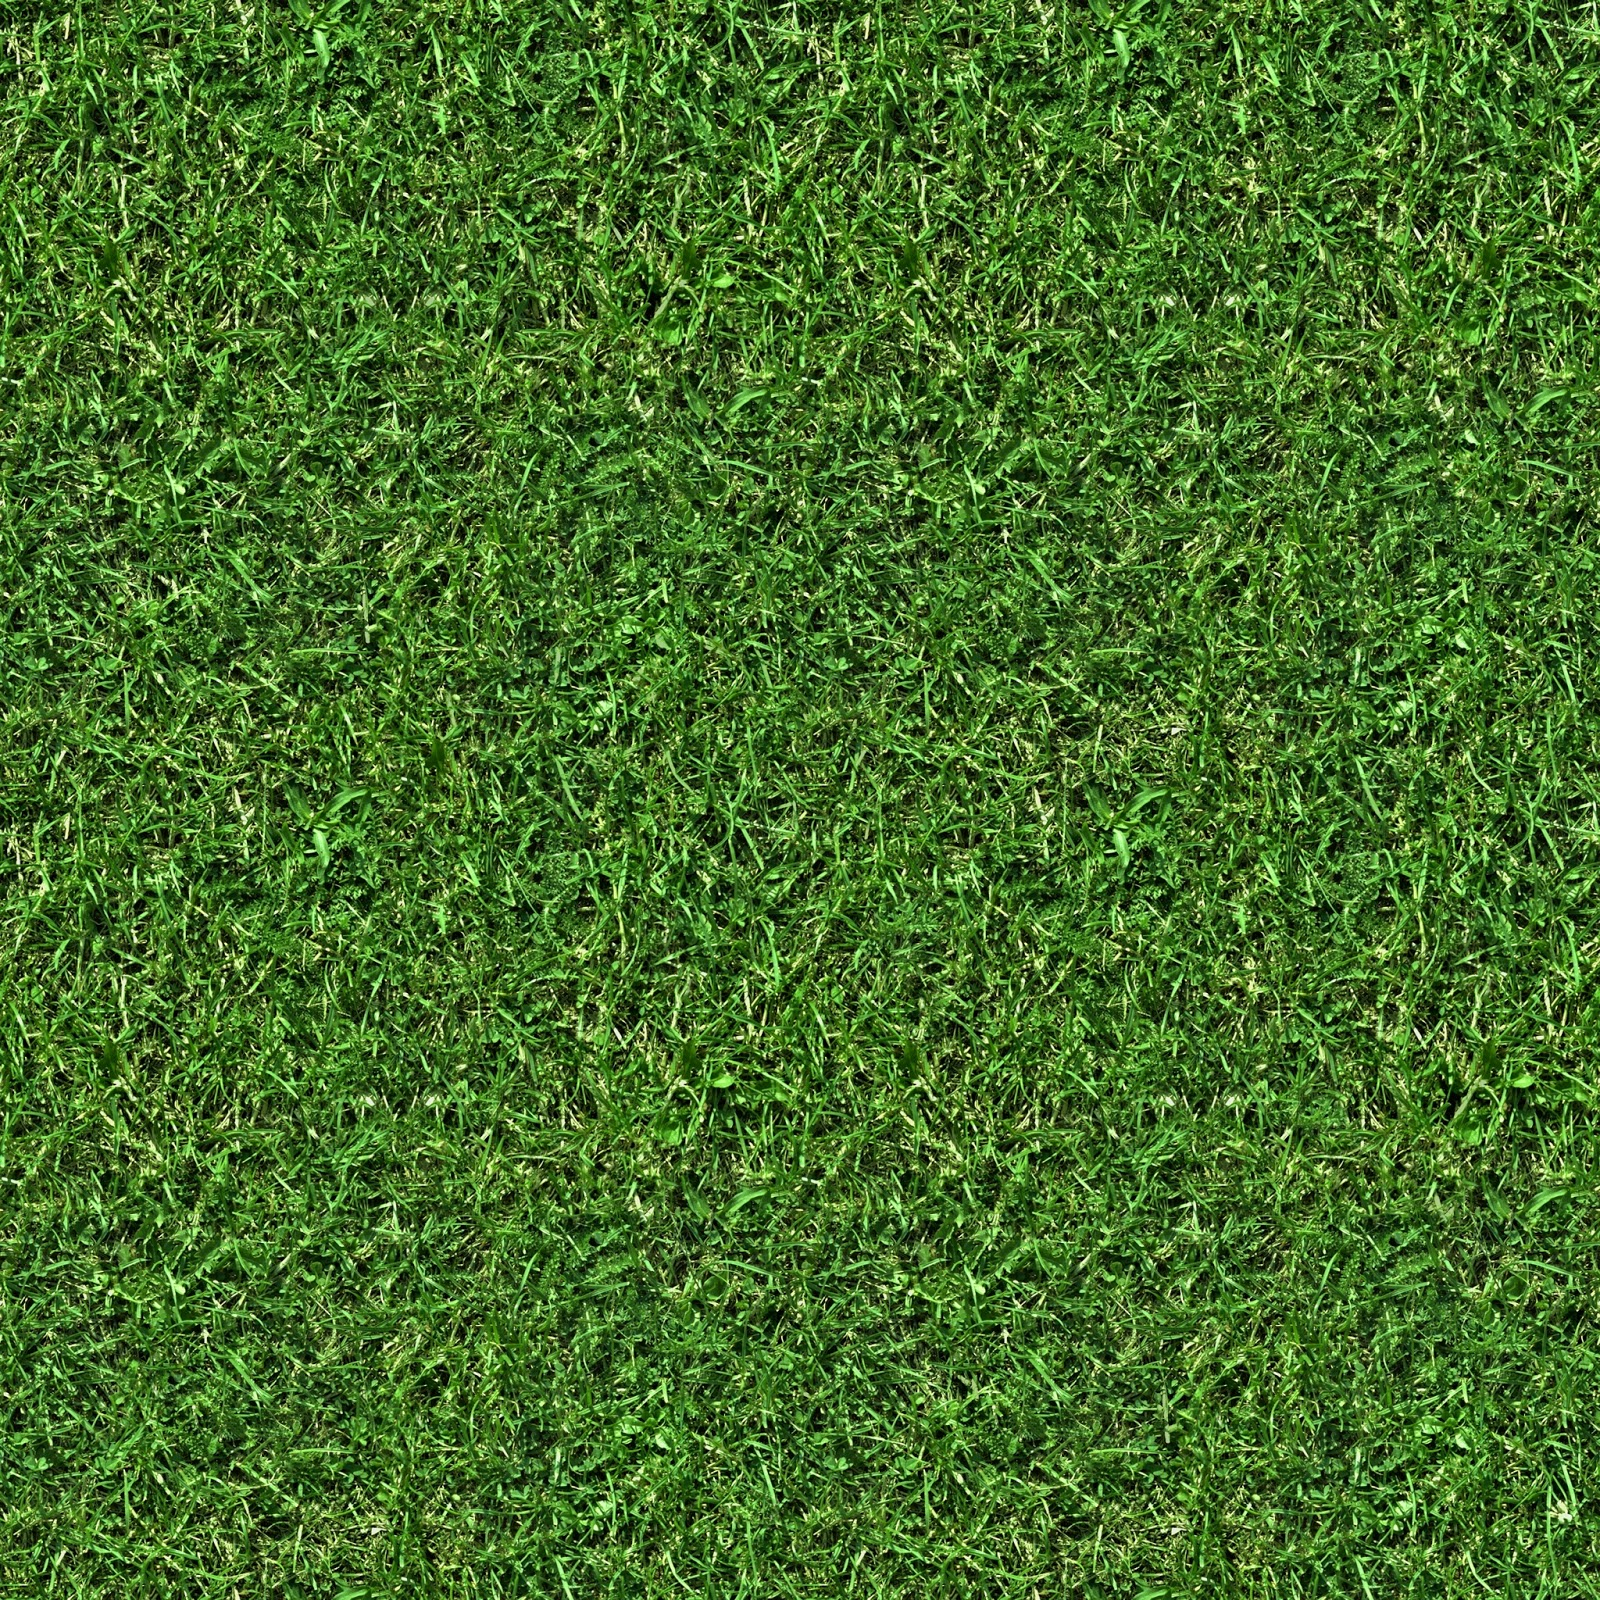 grass field texture inside grass 5 seamless turf lawn green ground field texture 2048x2048 high resolution seamless textures